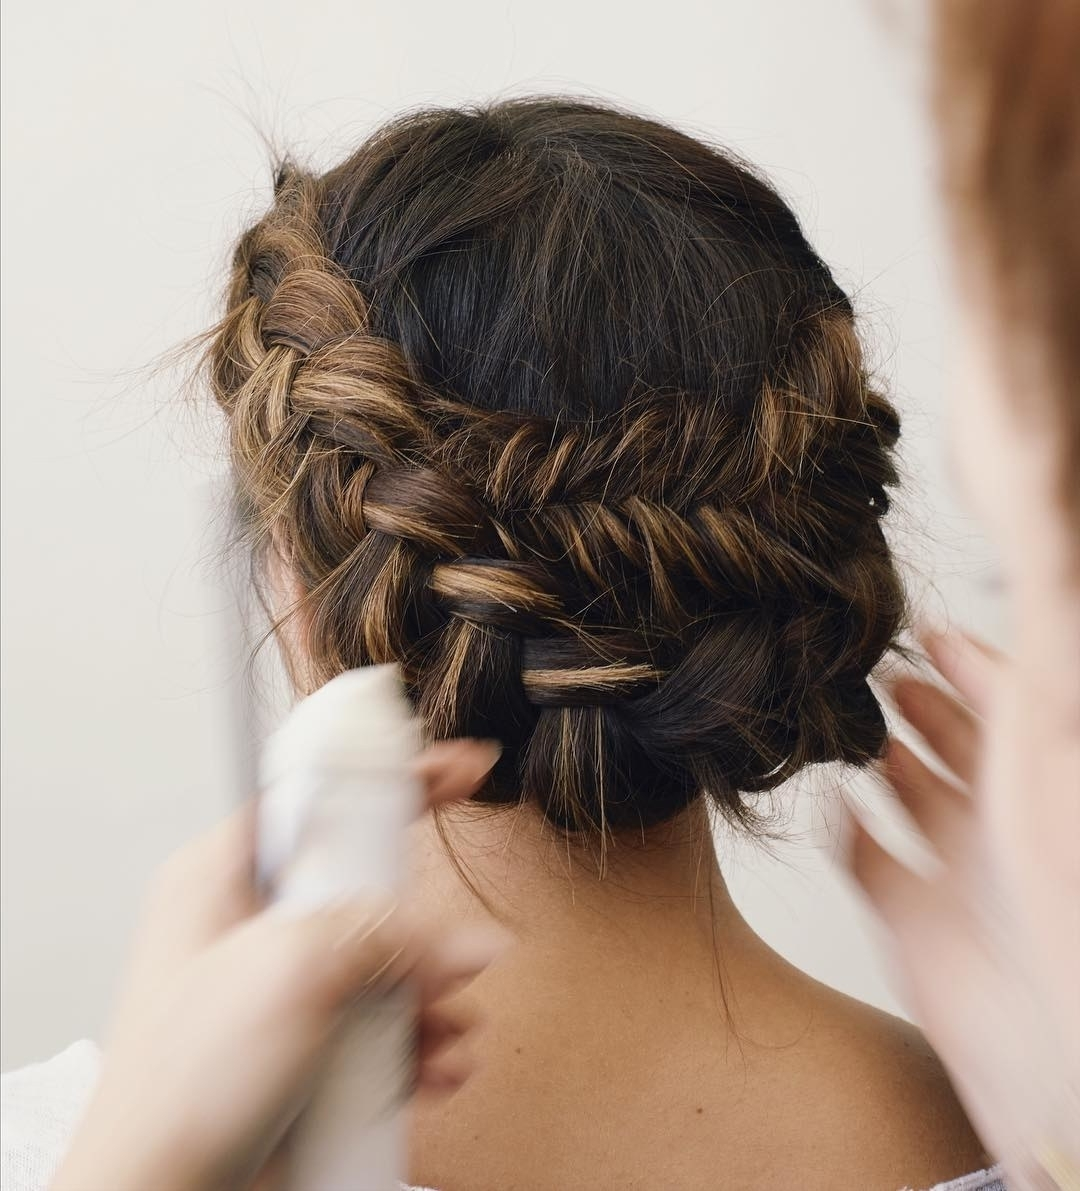 Favorite Braided Headband And Twisted Side Pony Hairstyles Intended For 61 Braided Wedding Hairstyles (View 18 of 20)